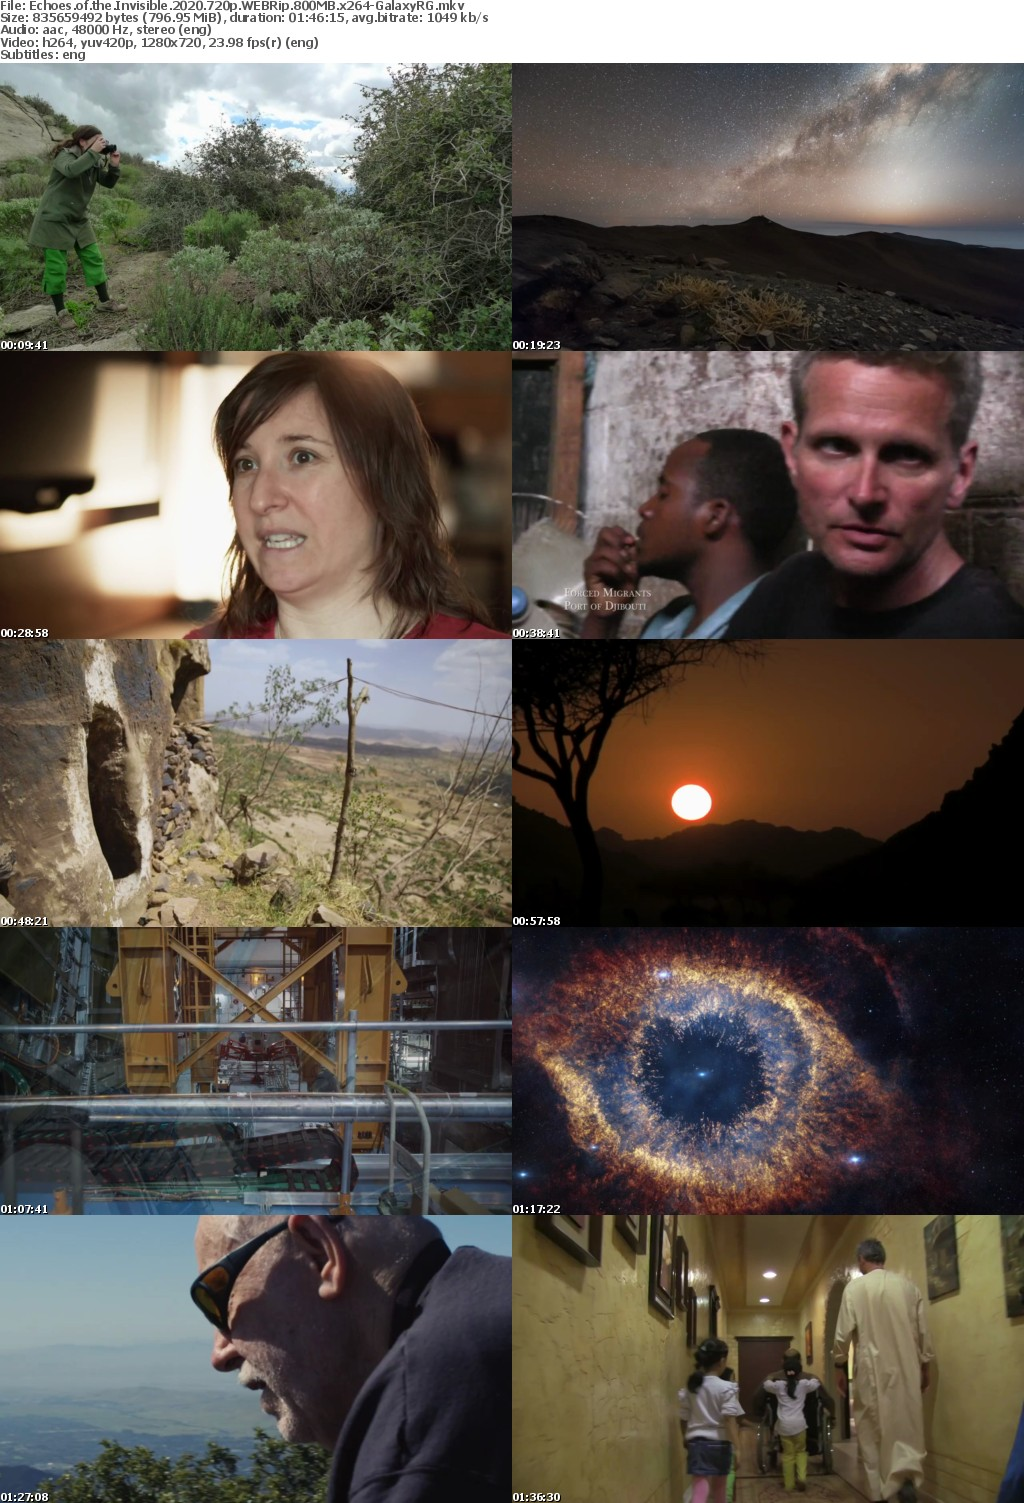 Echoes of the Invisible 2020 720p WEBRip 800MB x264-GalaxyRG